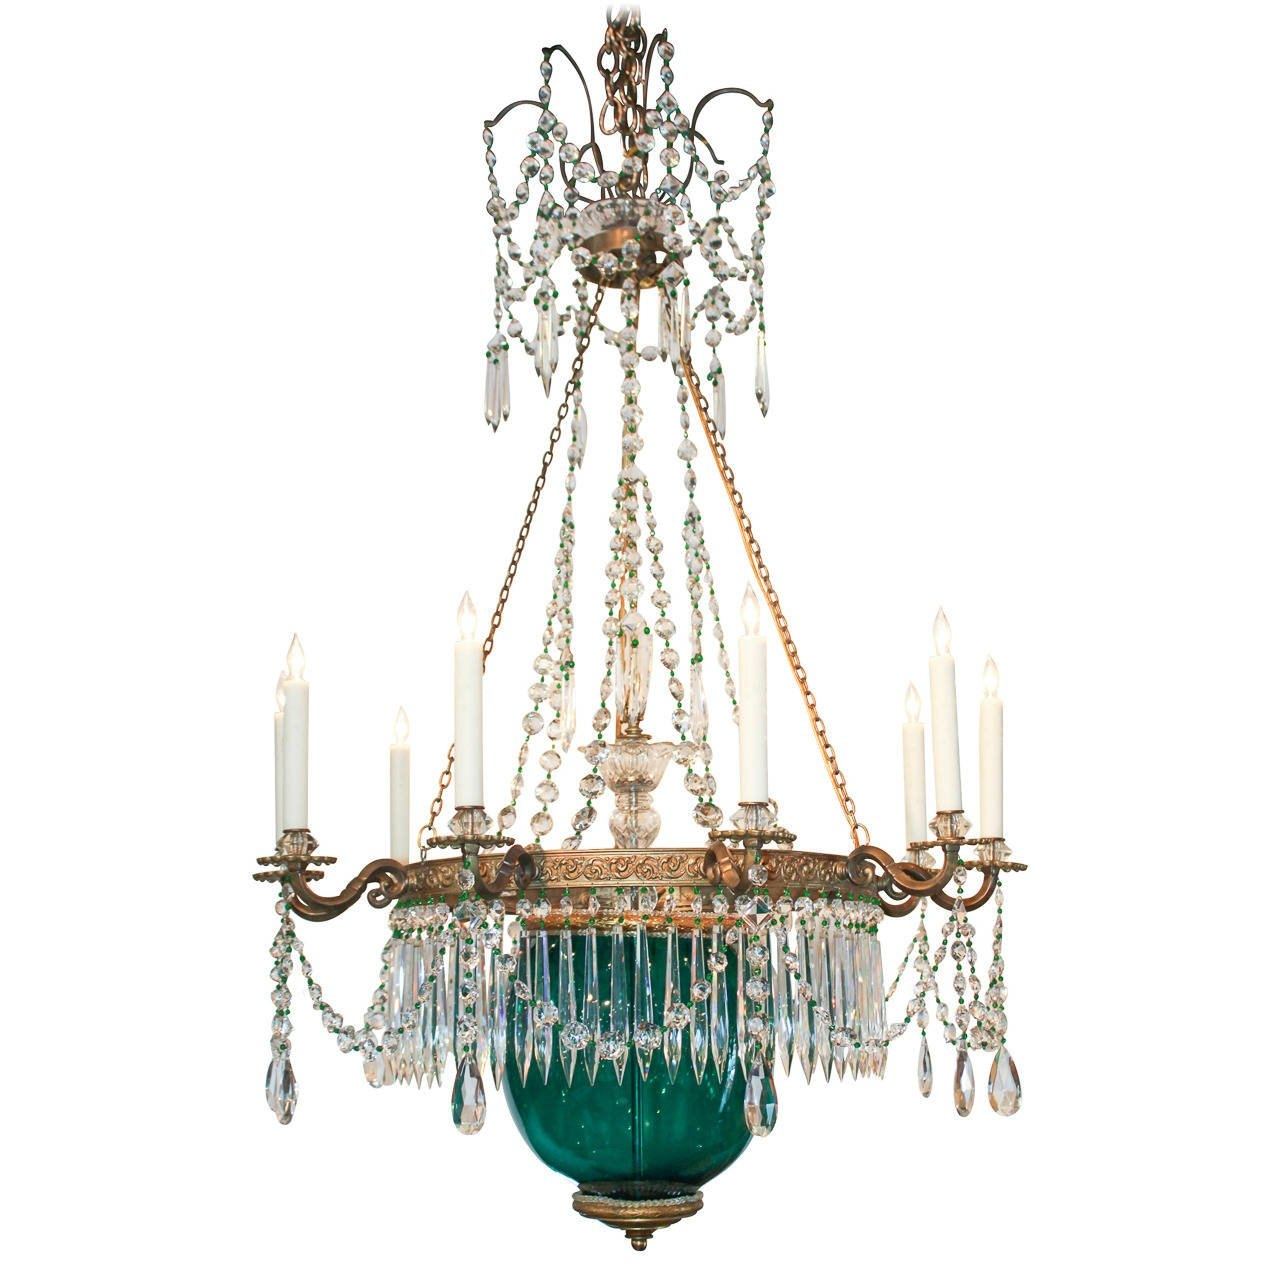 Chandelier Astonishing Colored Glass Chandelier Gypsy Chandeliers Regarding Multi Colored Gypsy Chandeliers (Image 6 of 25)